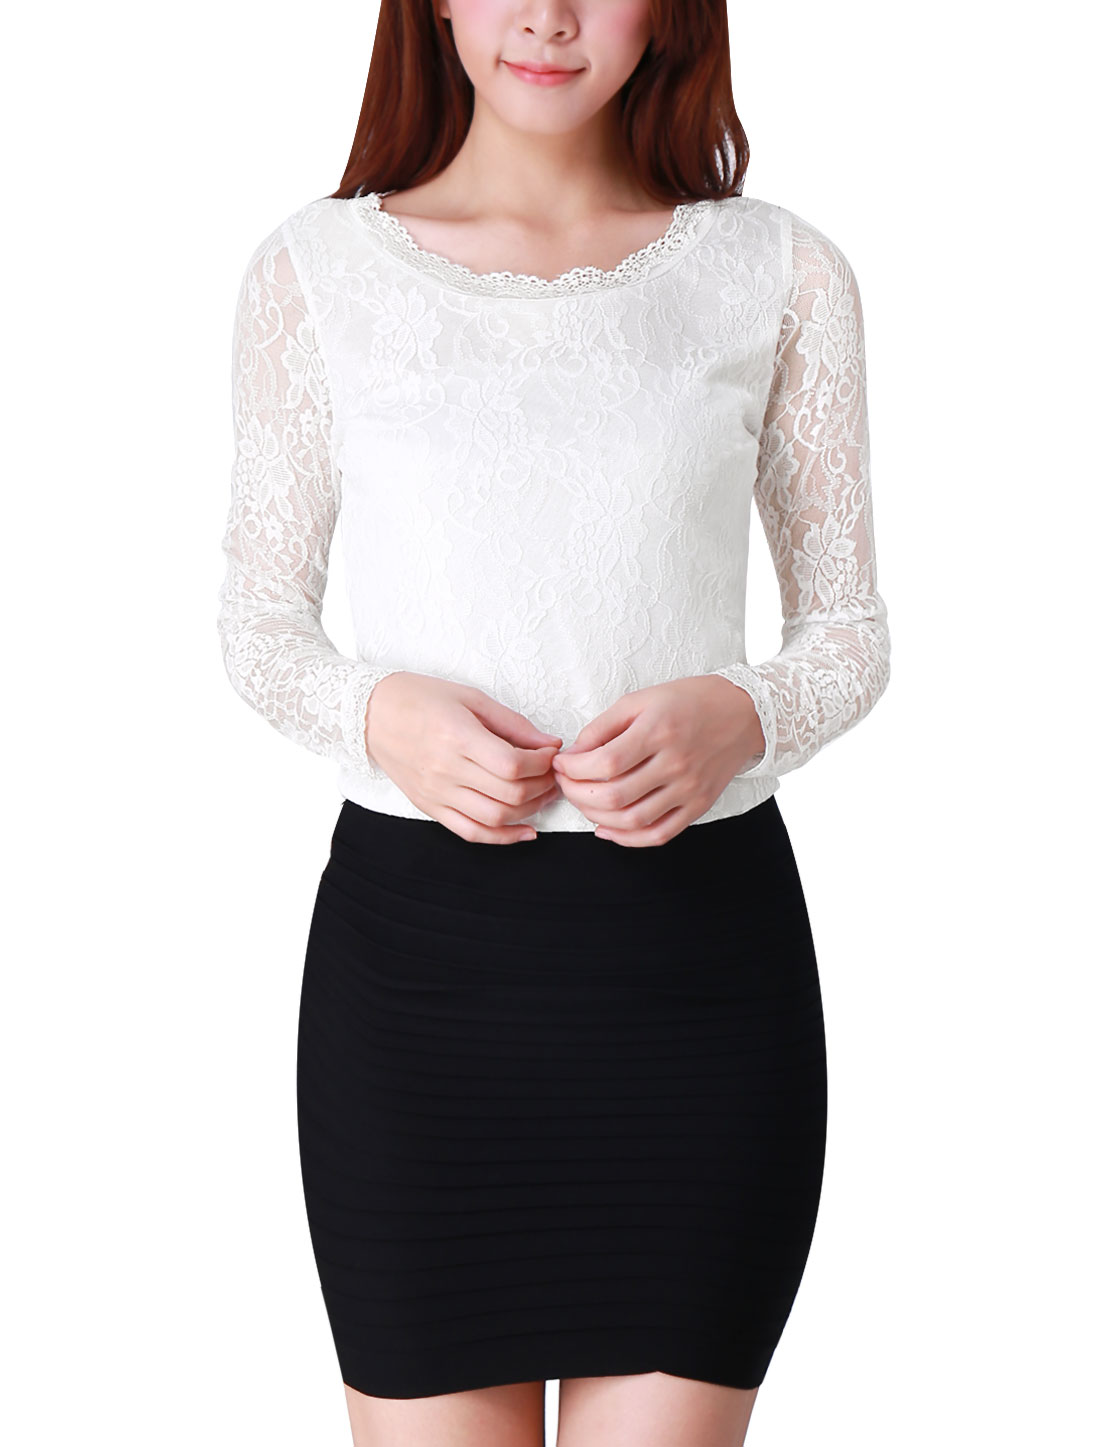 Ladies White Scoop Neck Flower Embroidery Spring Lace Shirt XS